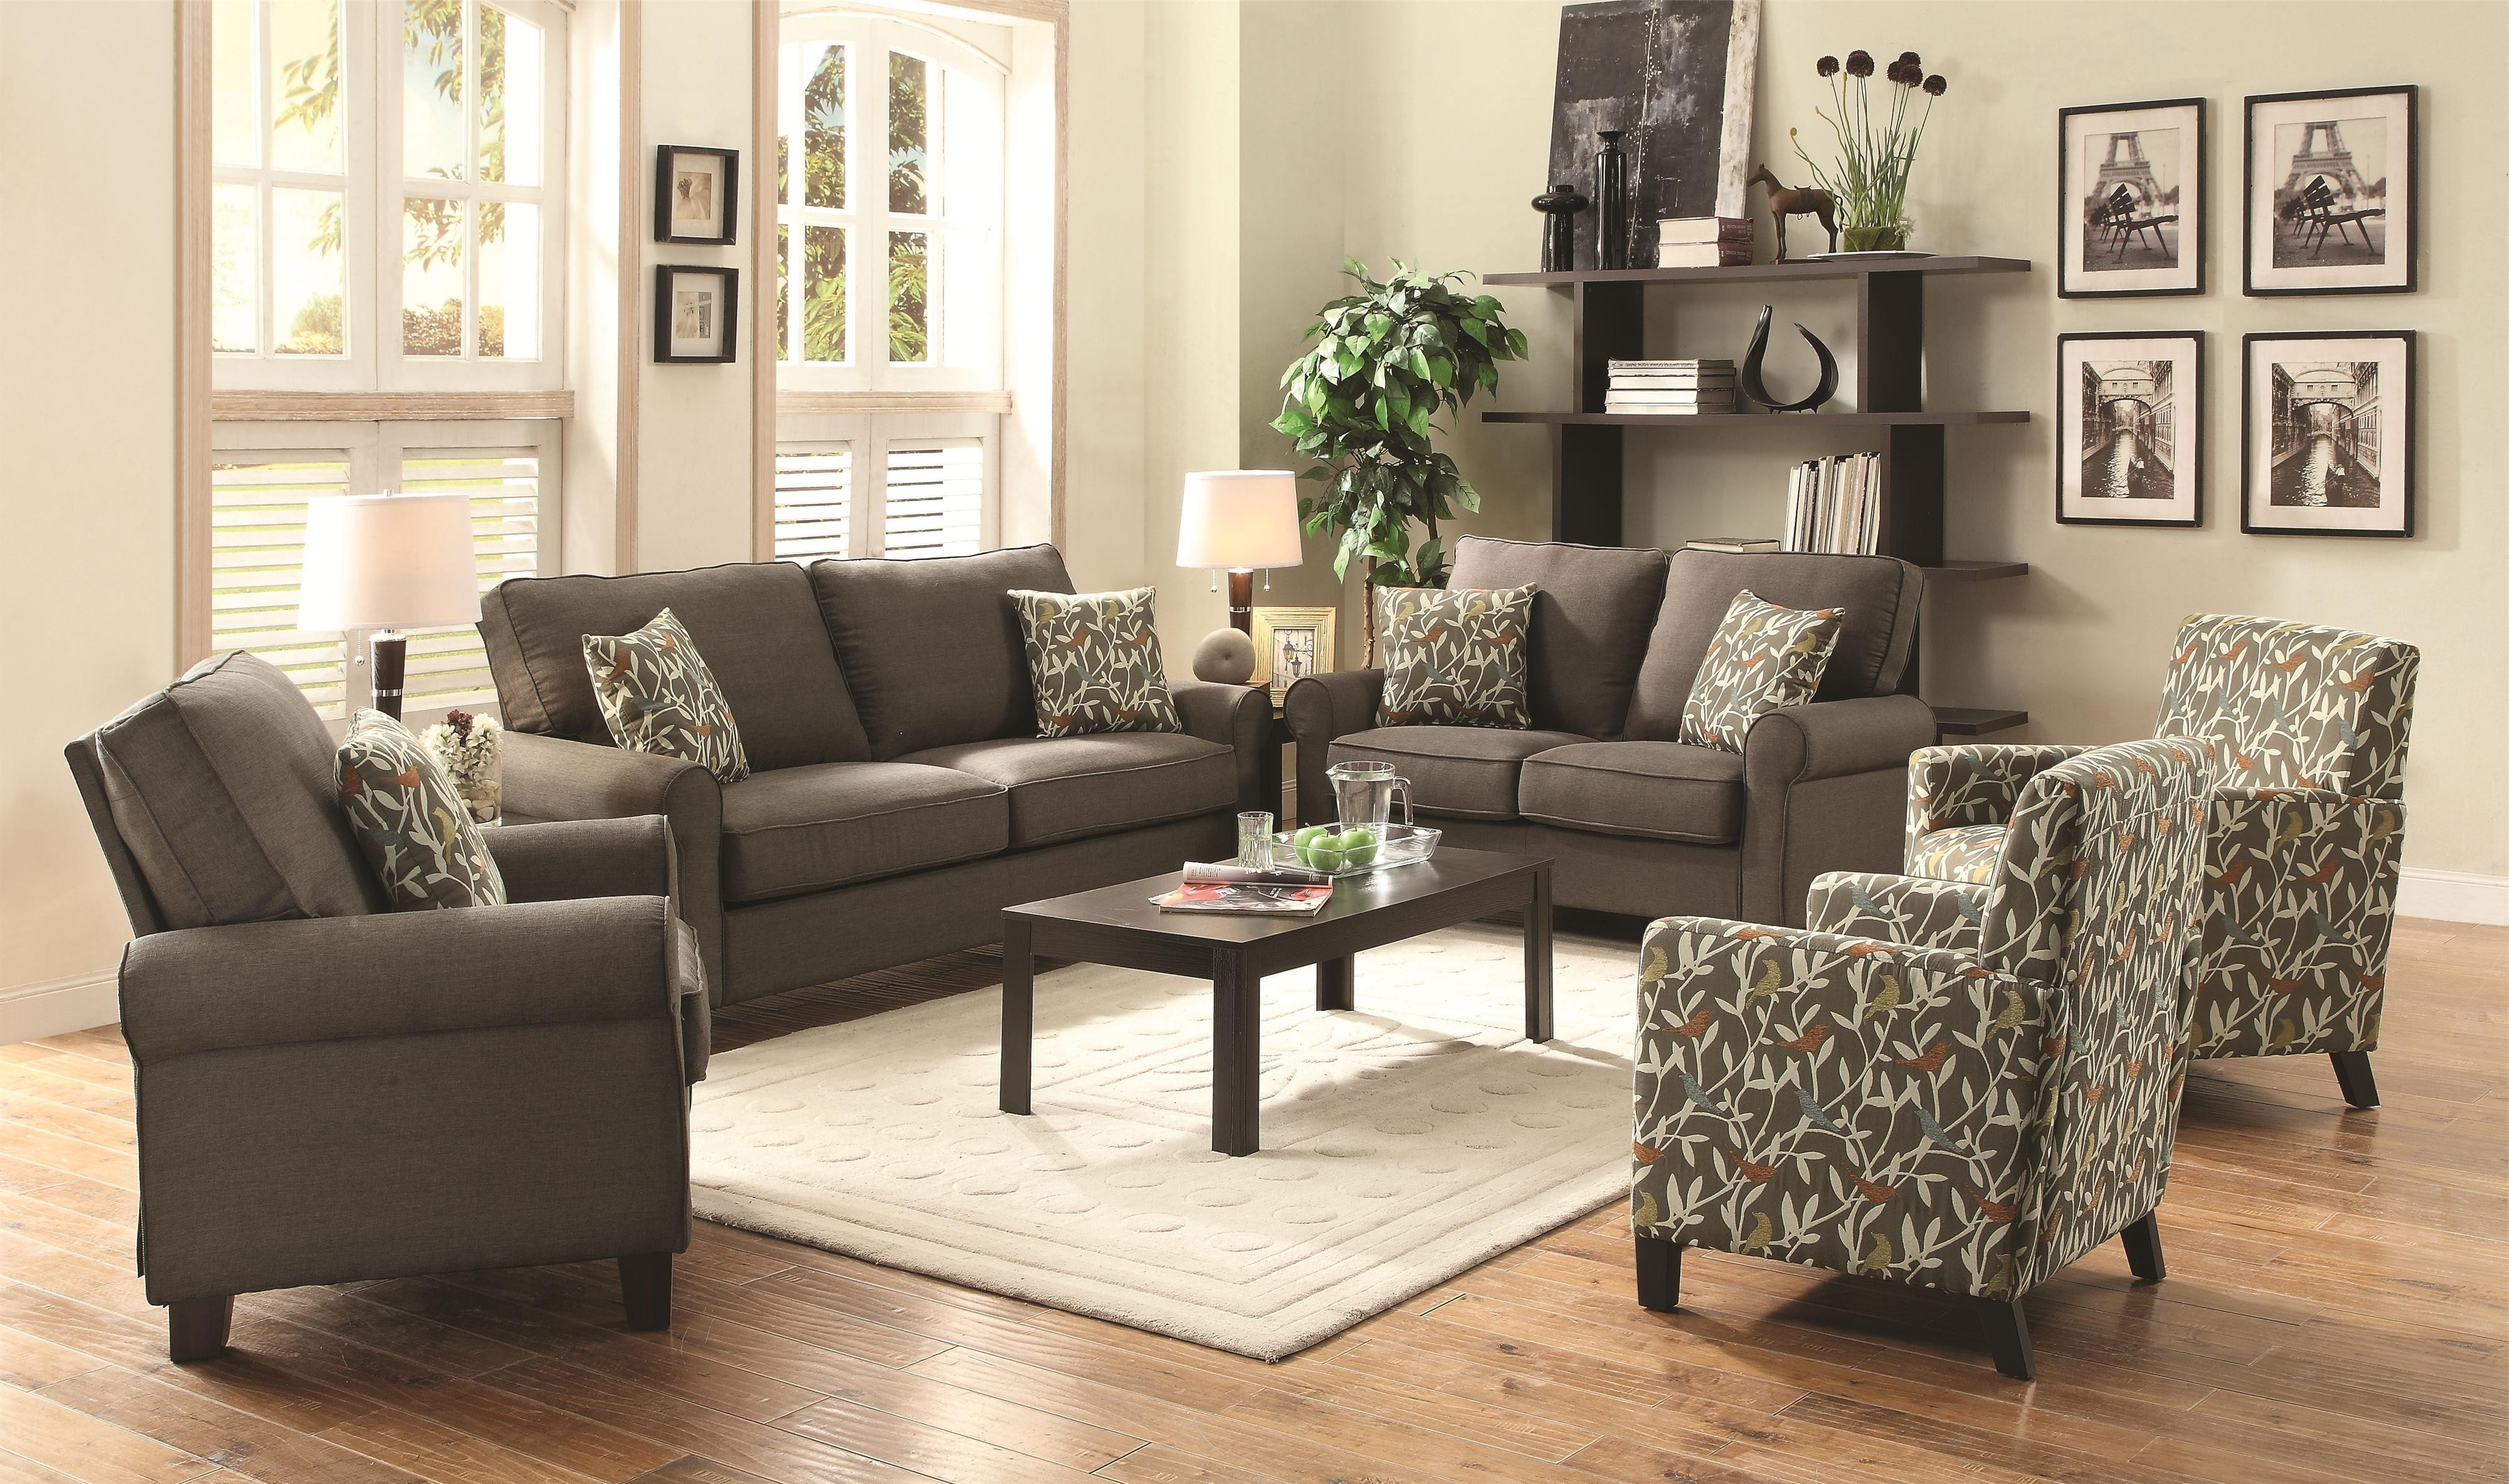 Casual Sofas And Chairs – Fjellkjeden Intended For Most Recent Casual Sofas And Chairs (View 2 of 20)